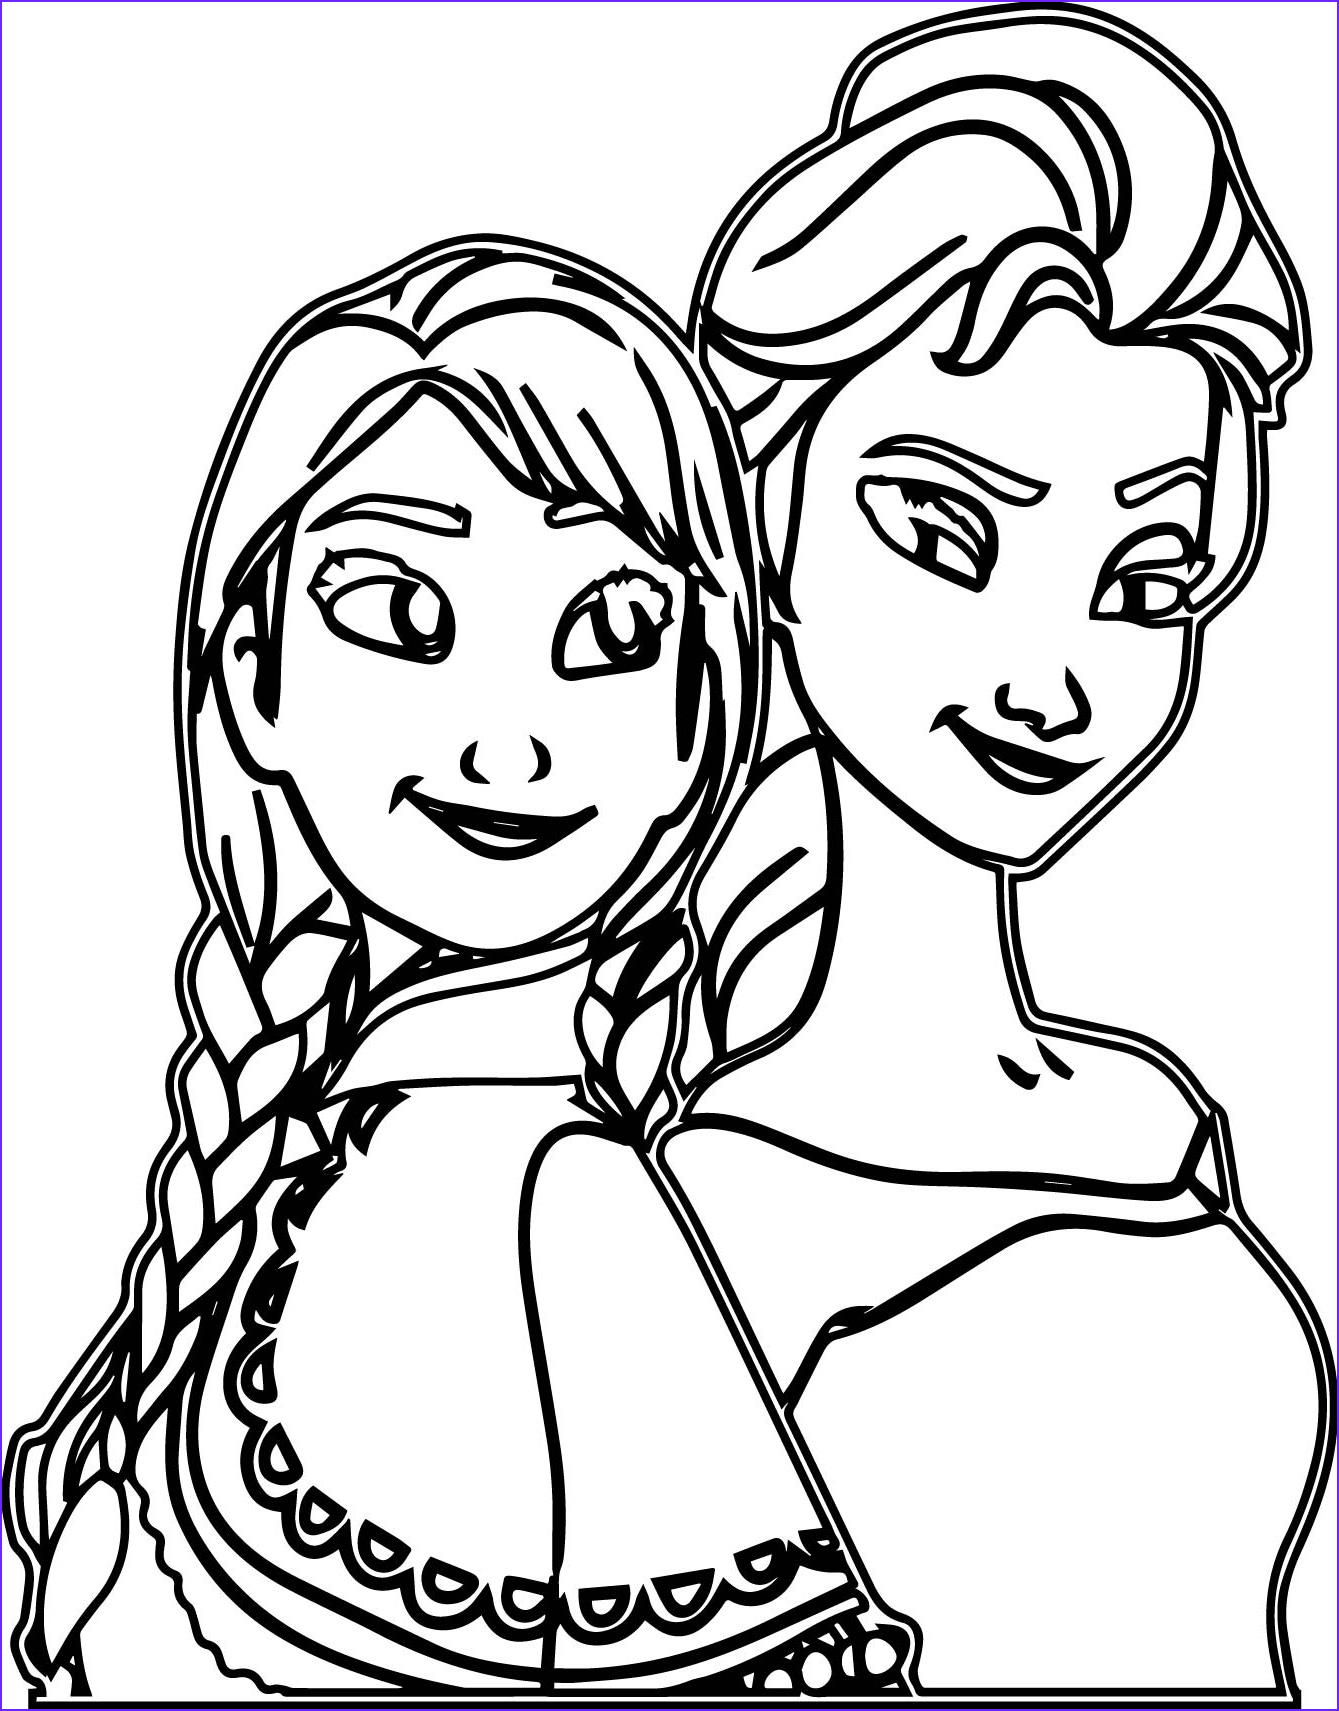 Elsa and Anna Coloring Unique Collection Elsa and Anna forever Coloring Page